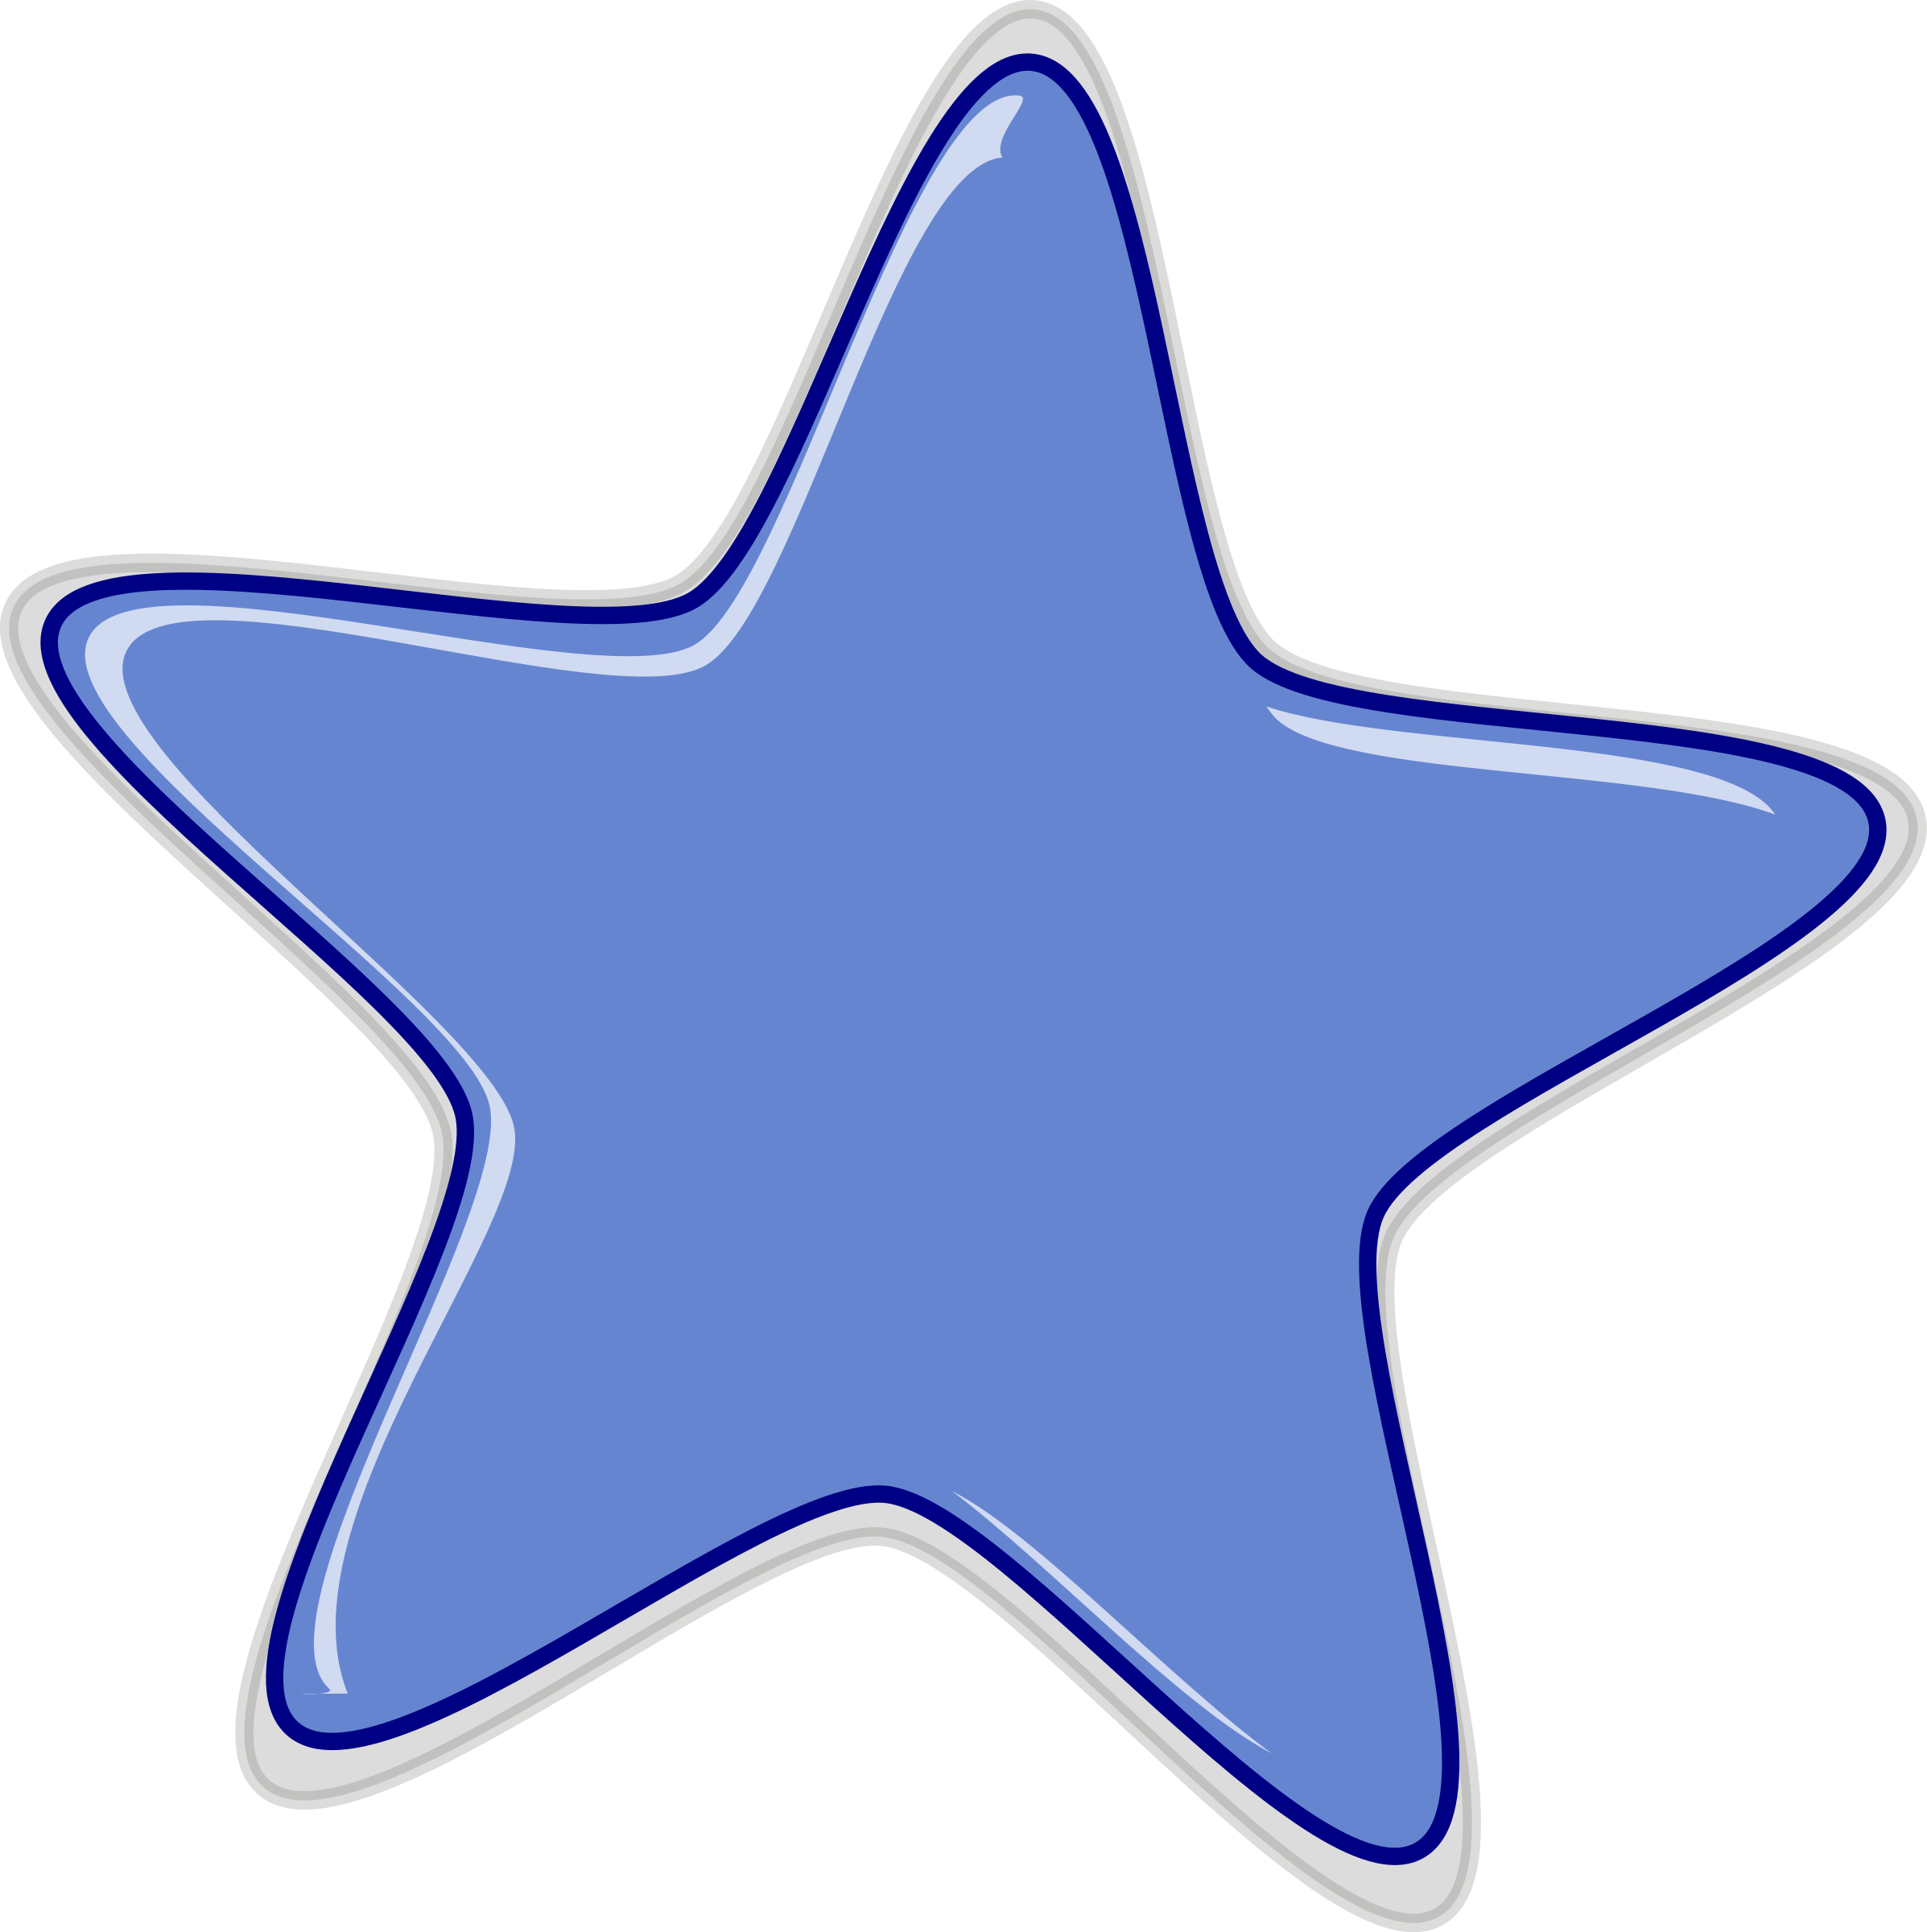 Pin Clipart Of Stars By | Star clipart, Clip art, Free clip art